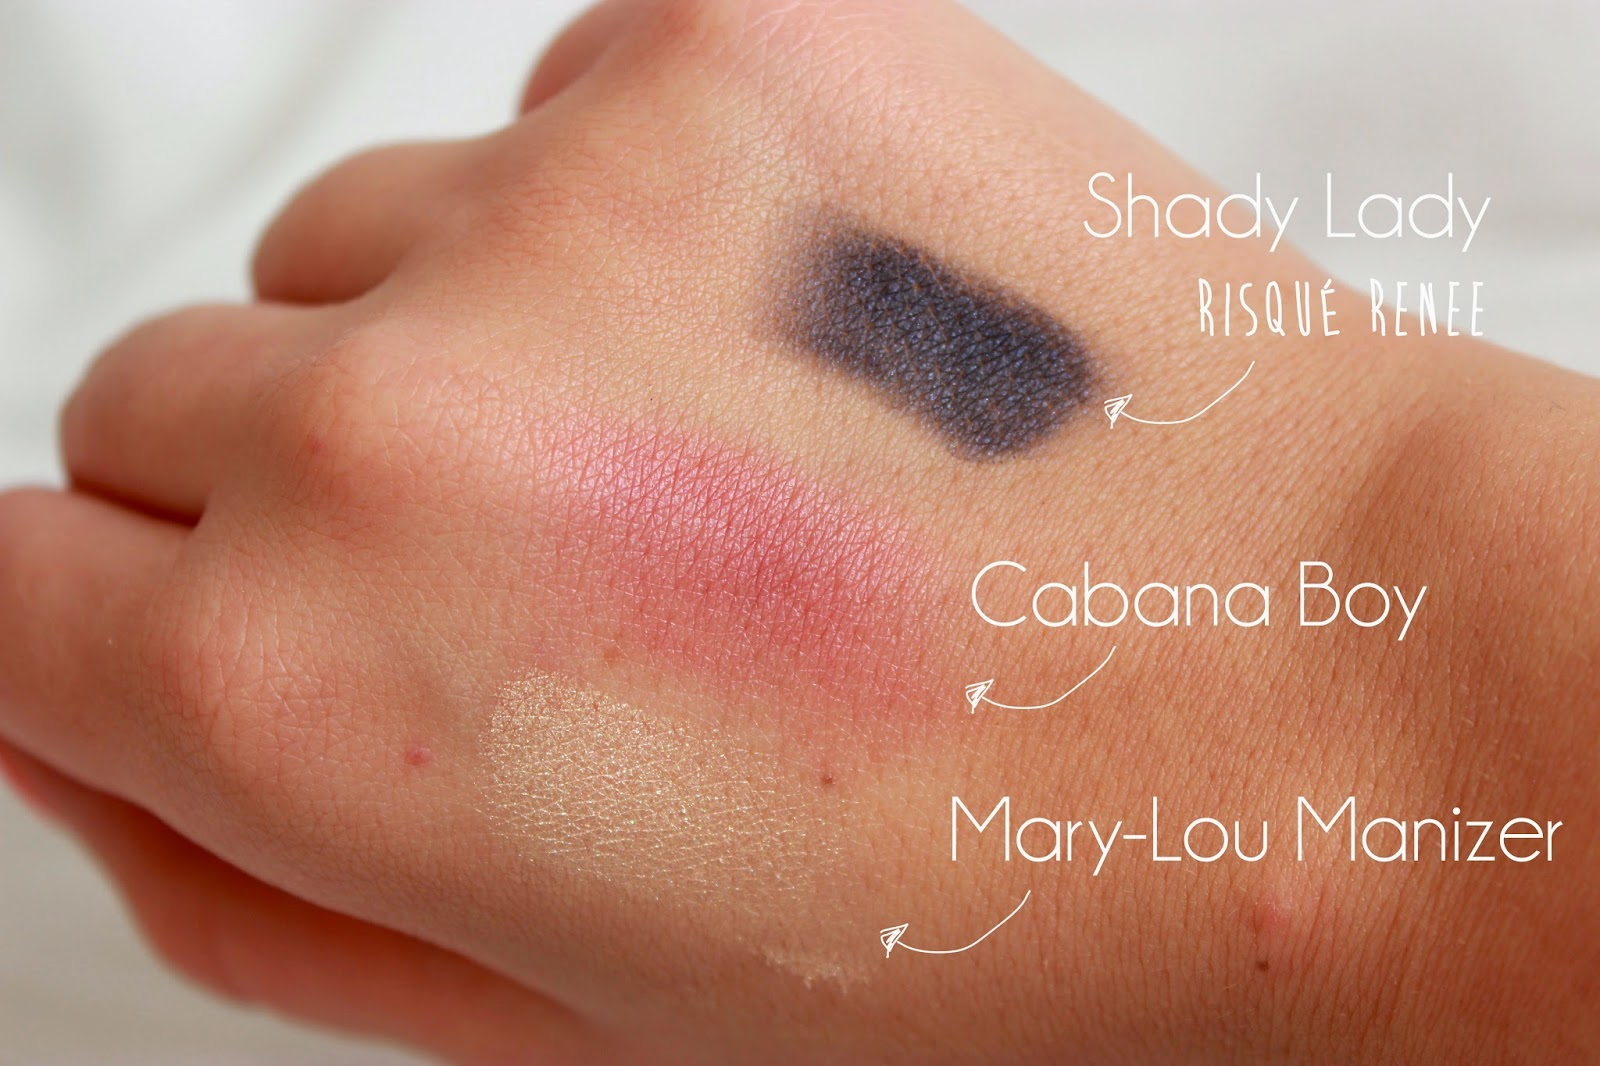 Swatch The Balm Shady Lady, Cabana Boy, Marylou Manizer